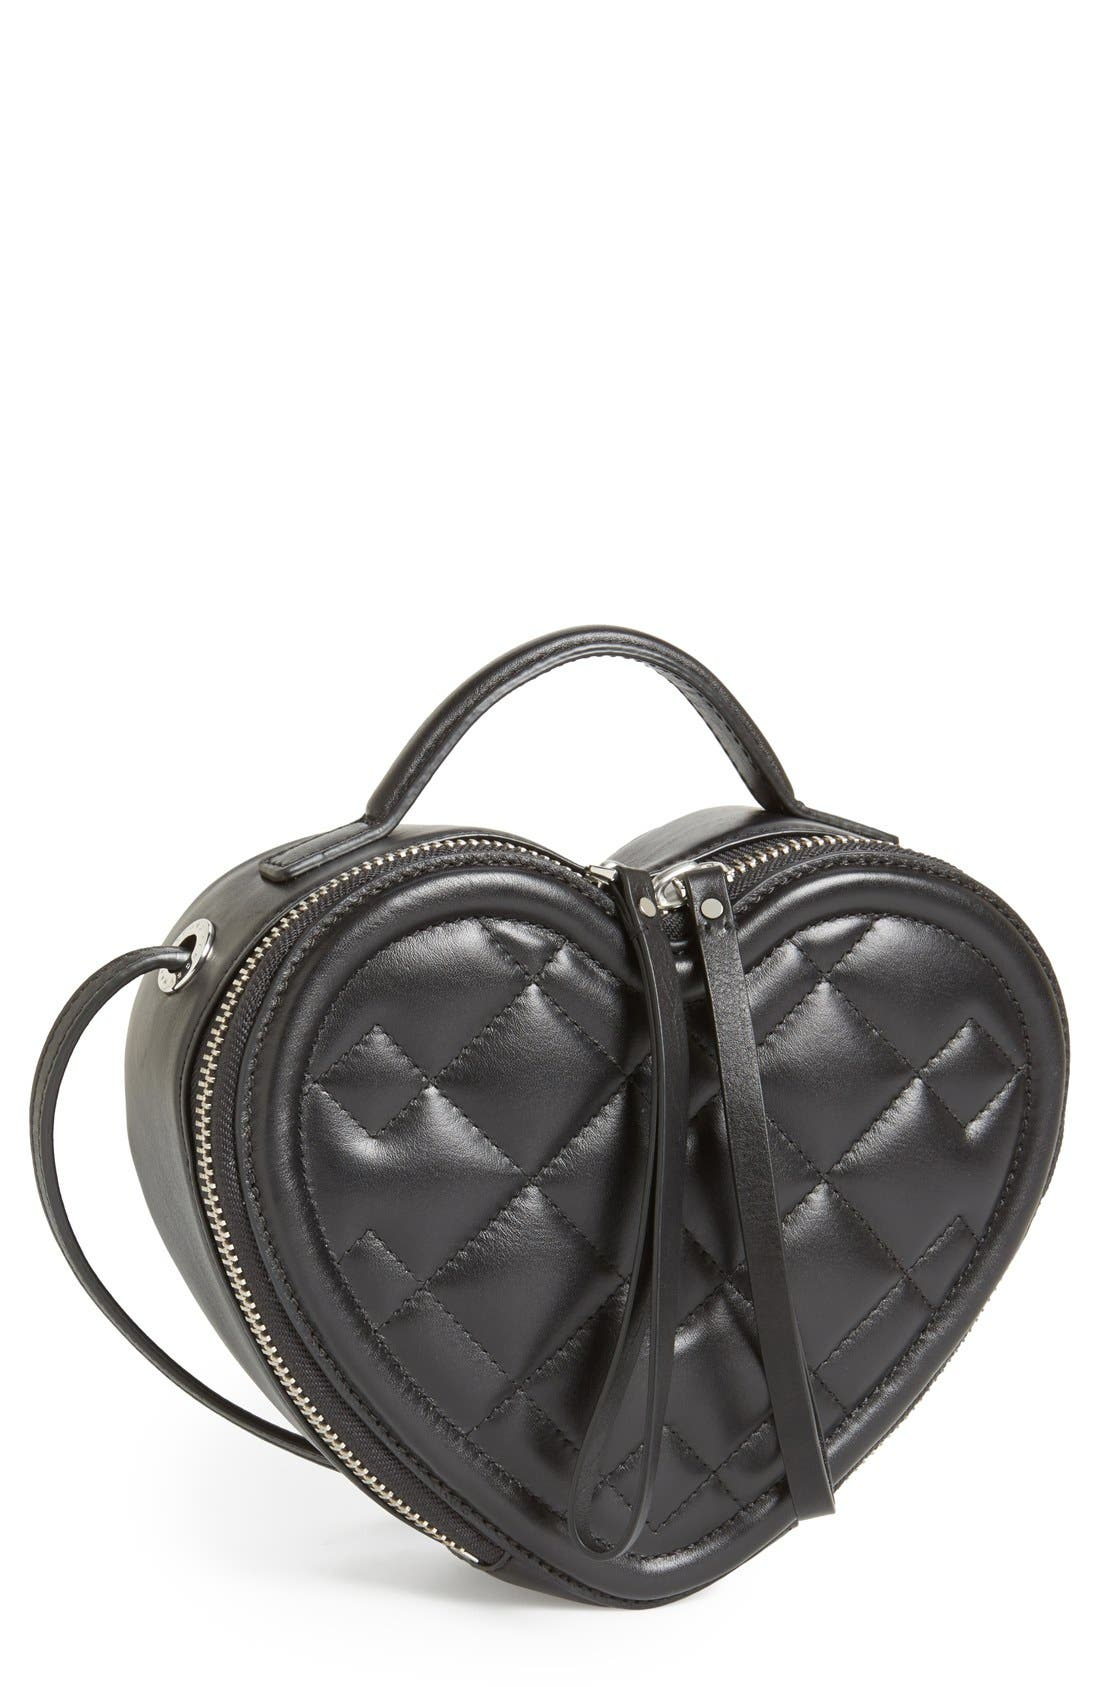 Alternate Image 1 Selected - MARC BY MARC JACOBS 'Heart to Heart' Crossbody